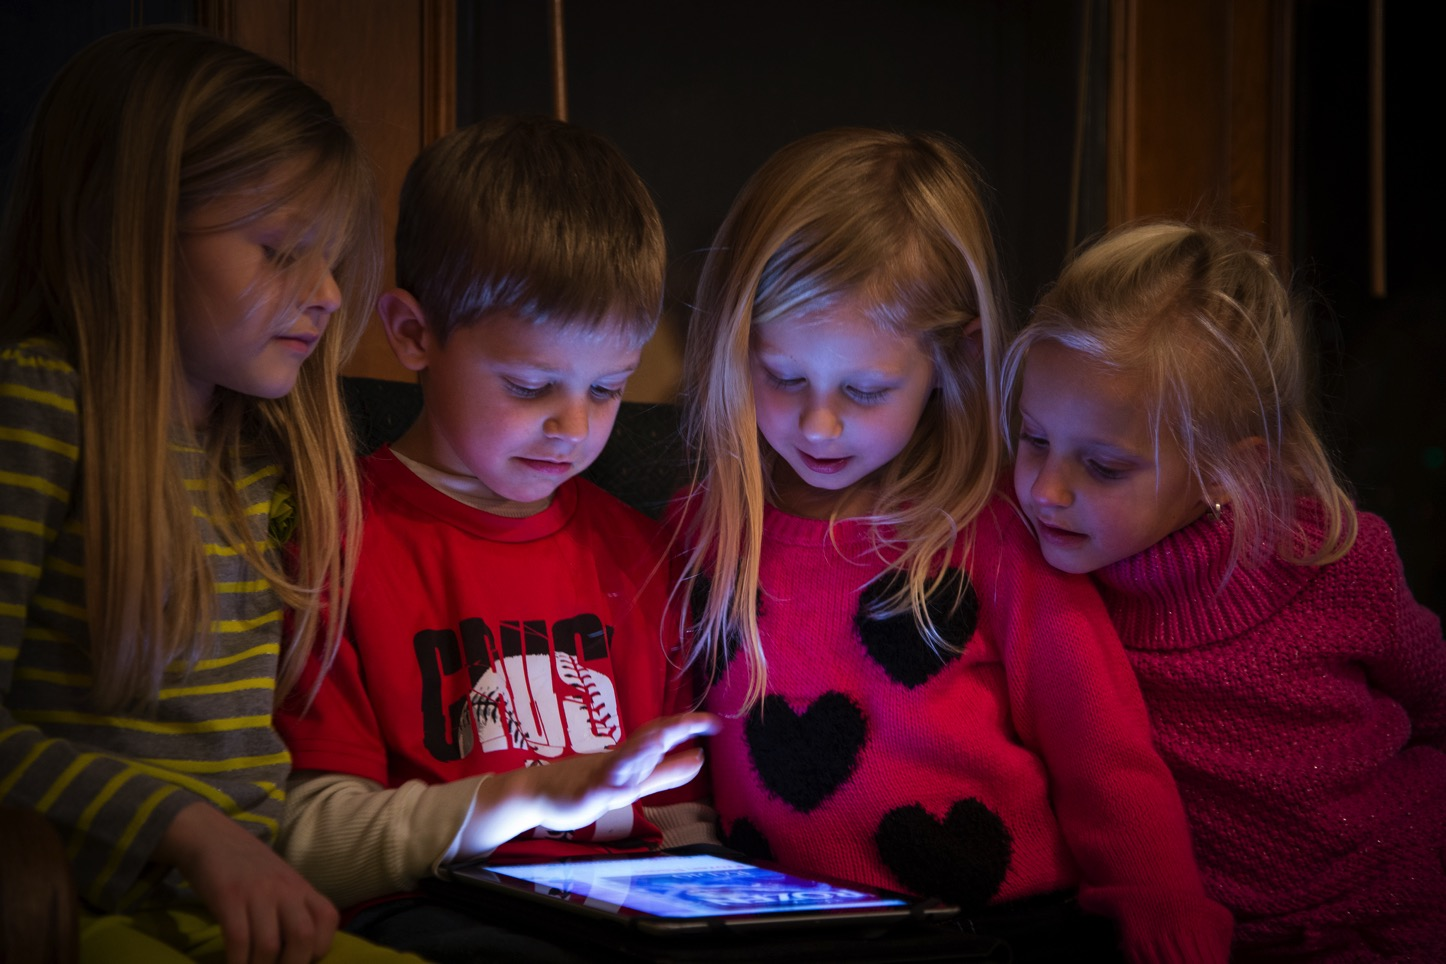 Kids Using iPads